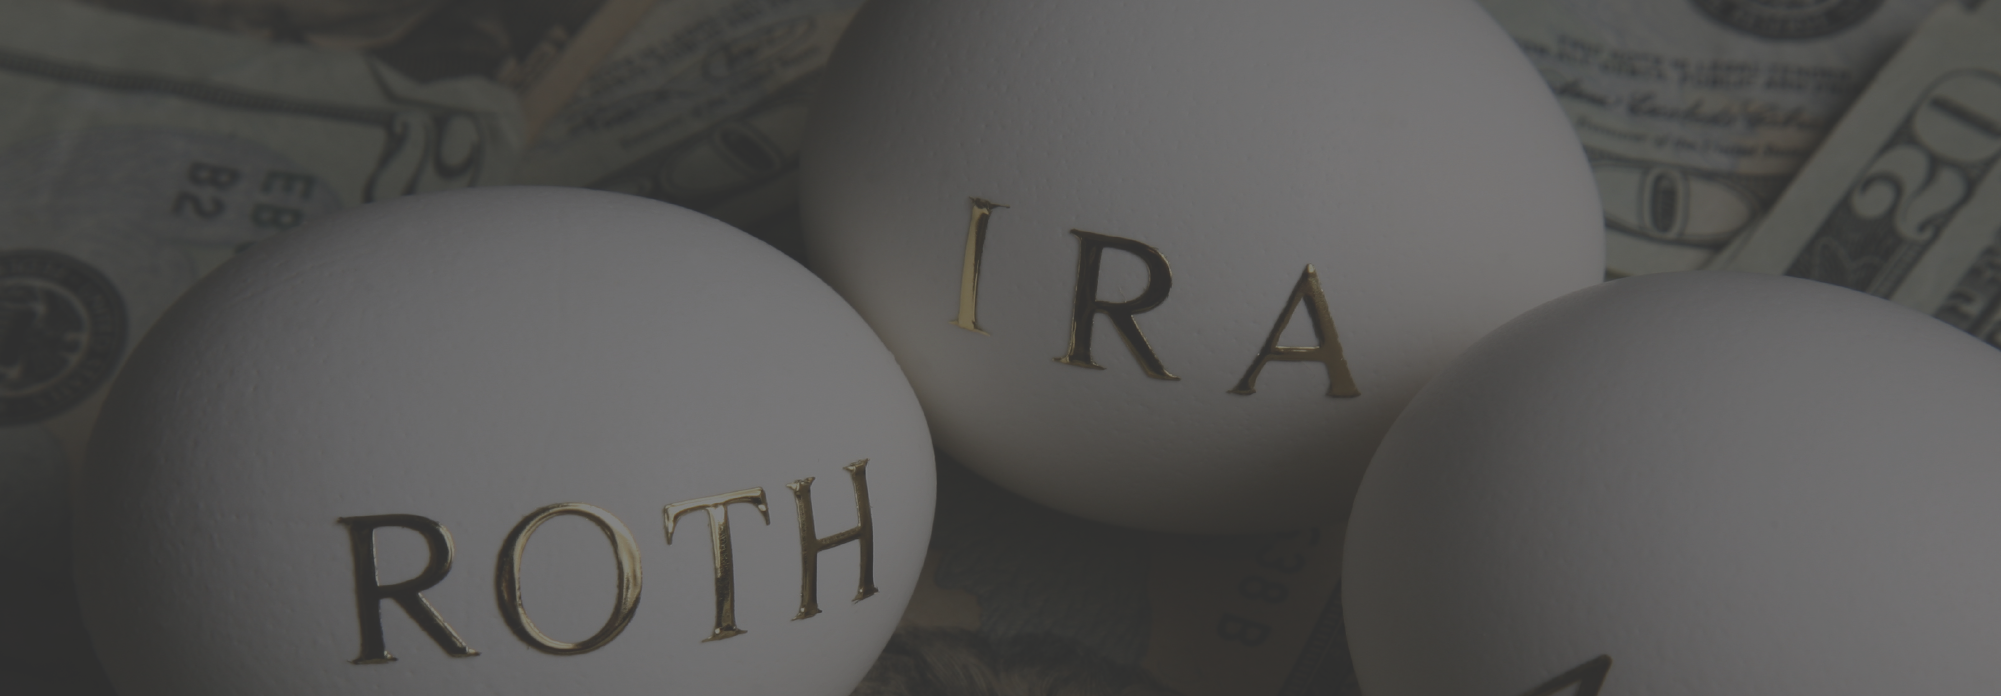 The ultimate roth ira conversion guide everything you need to how much money do you need to start a roth or traditional ira falaconquin